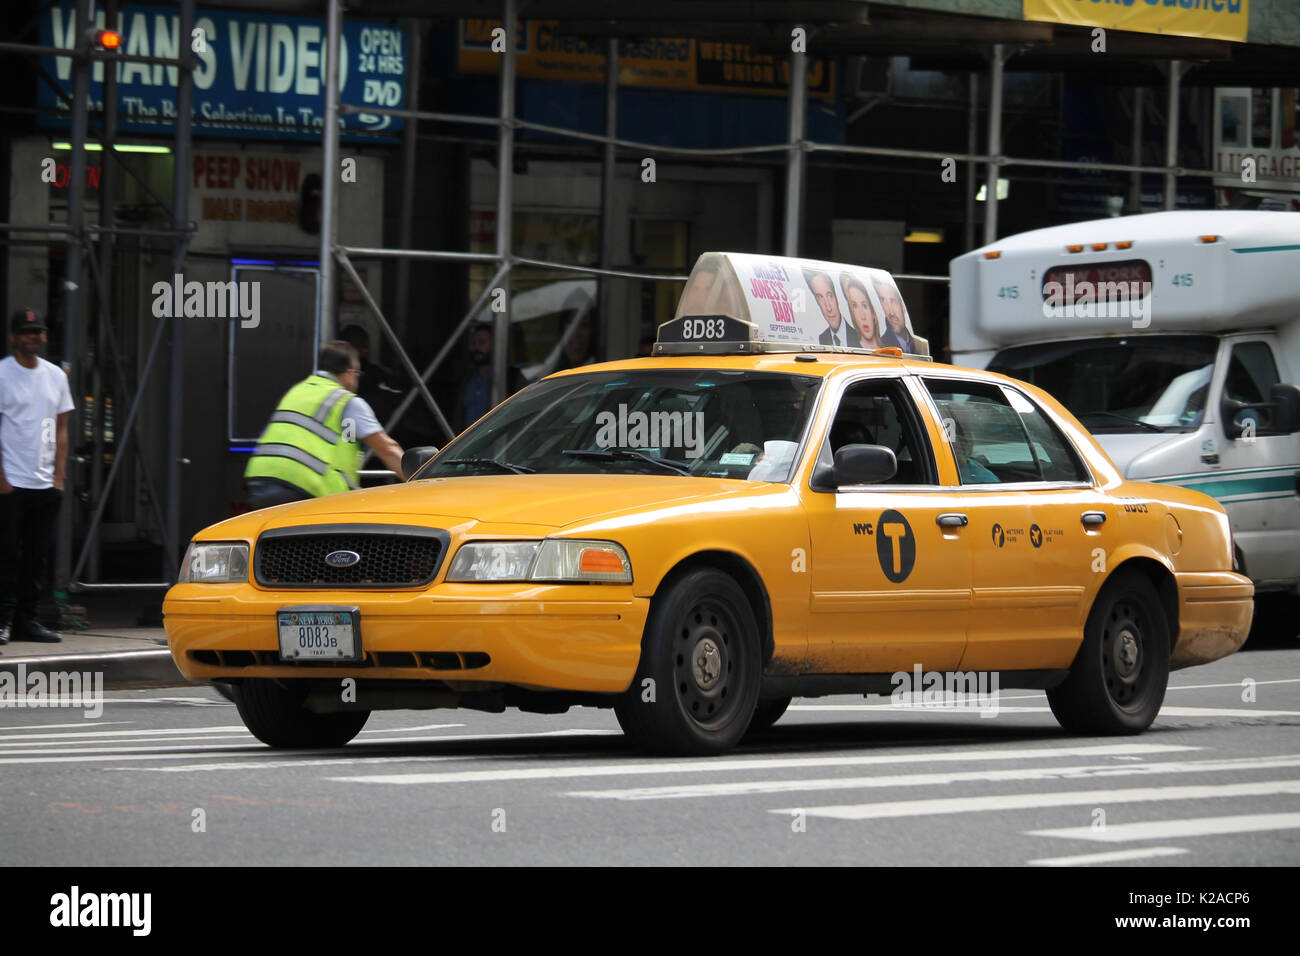 Ford Crown Victoria 2016 >> New York City Ford Crown Victoria Taxi Cab in Midtown Manhattan Stock Photo: 156352174 - Alamy